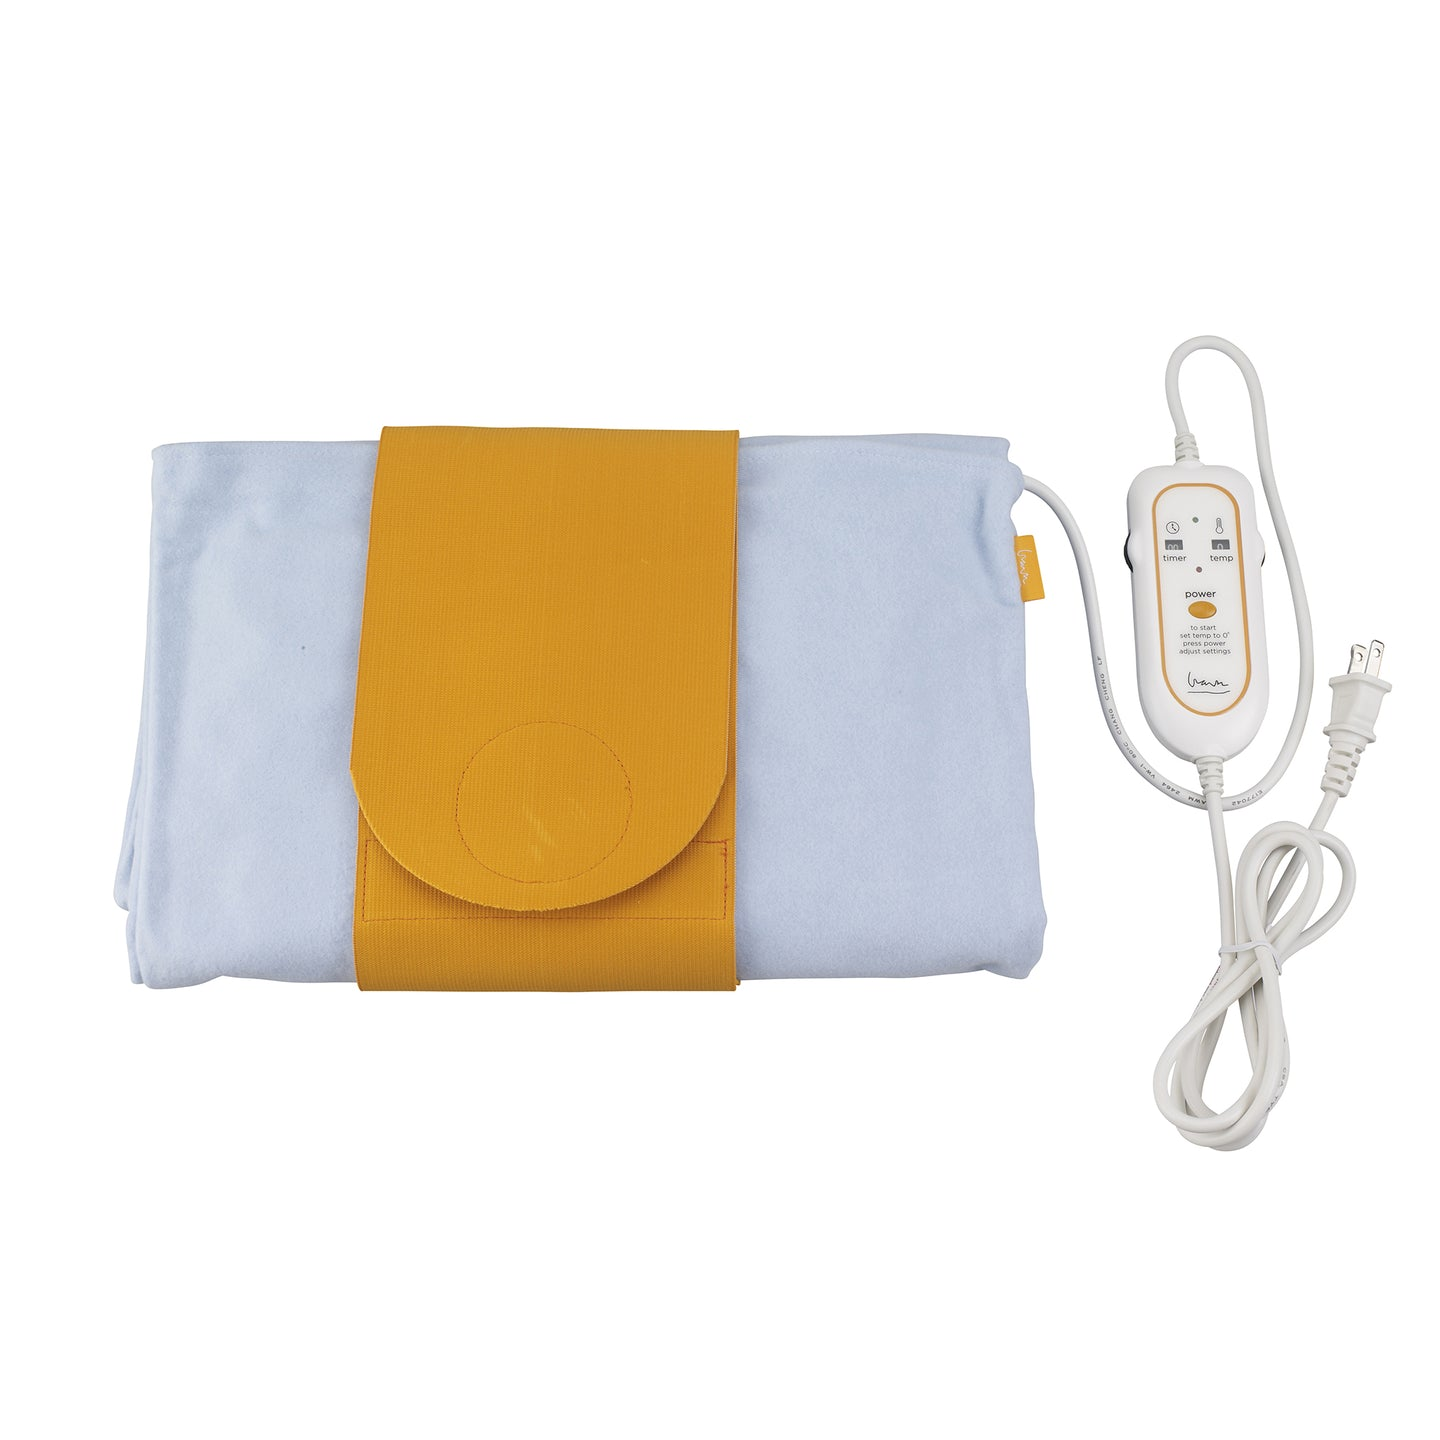 Drive Therma Moist Michael Graves Heating Pad- Standard 14